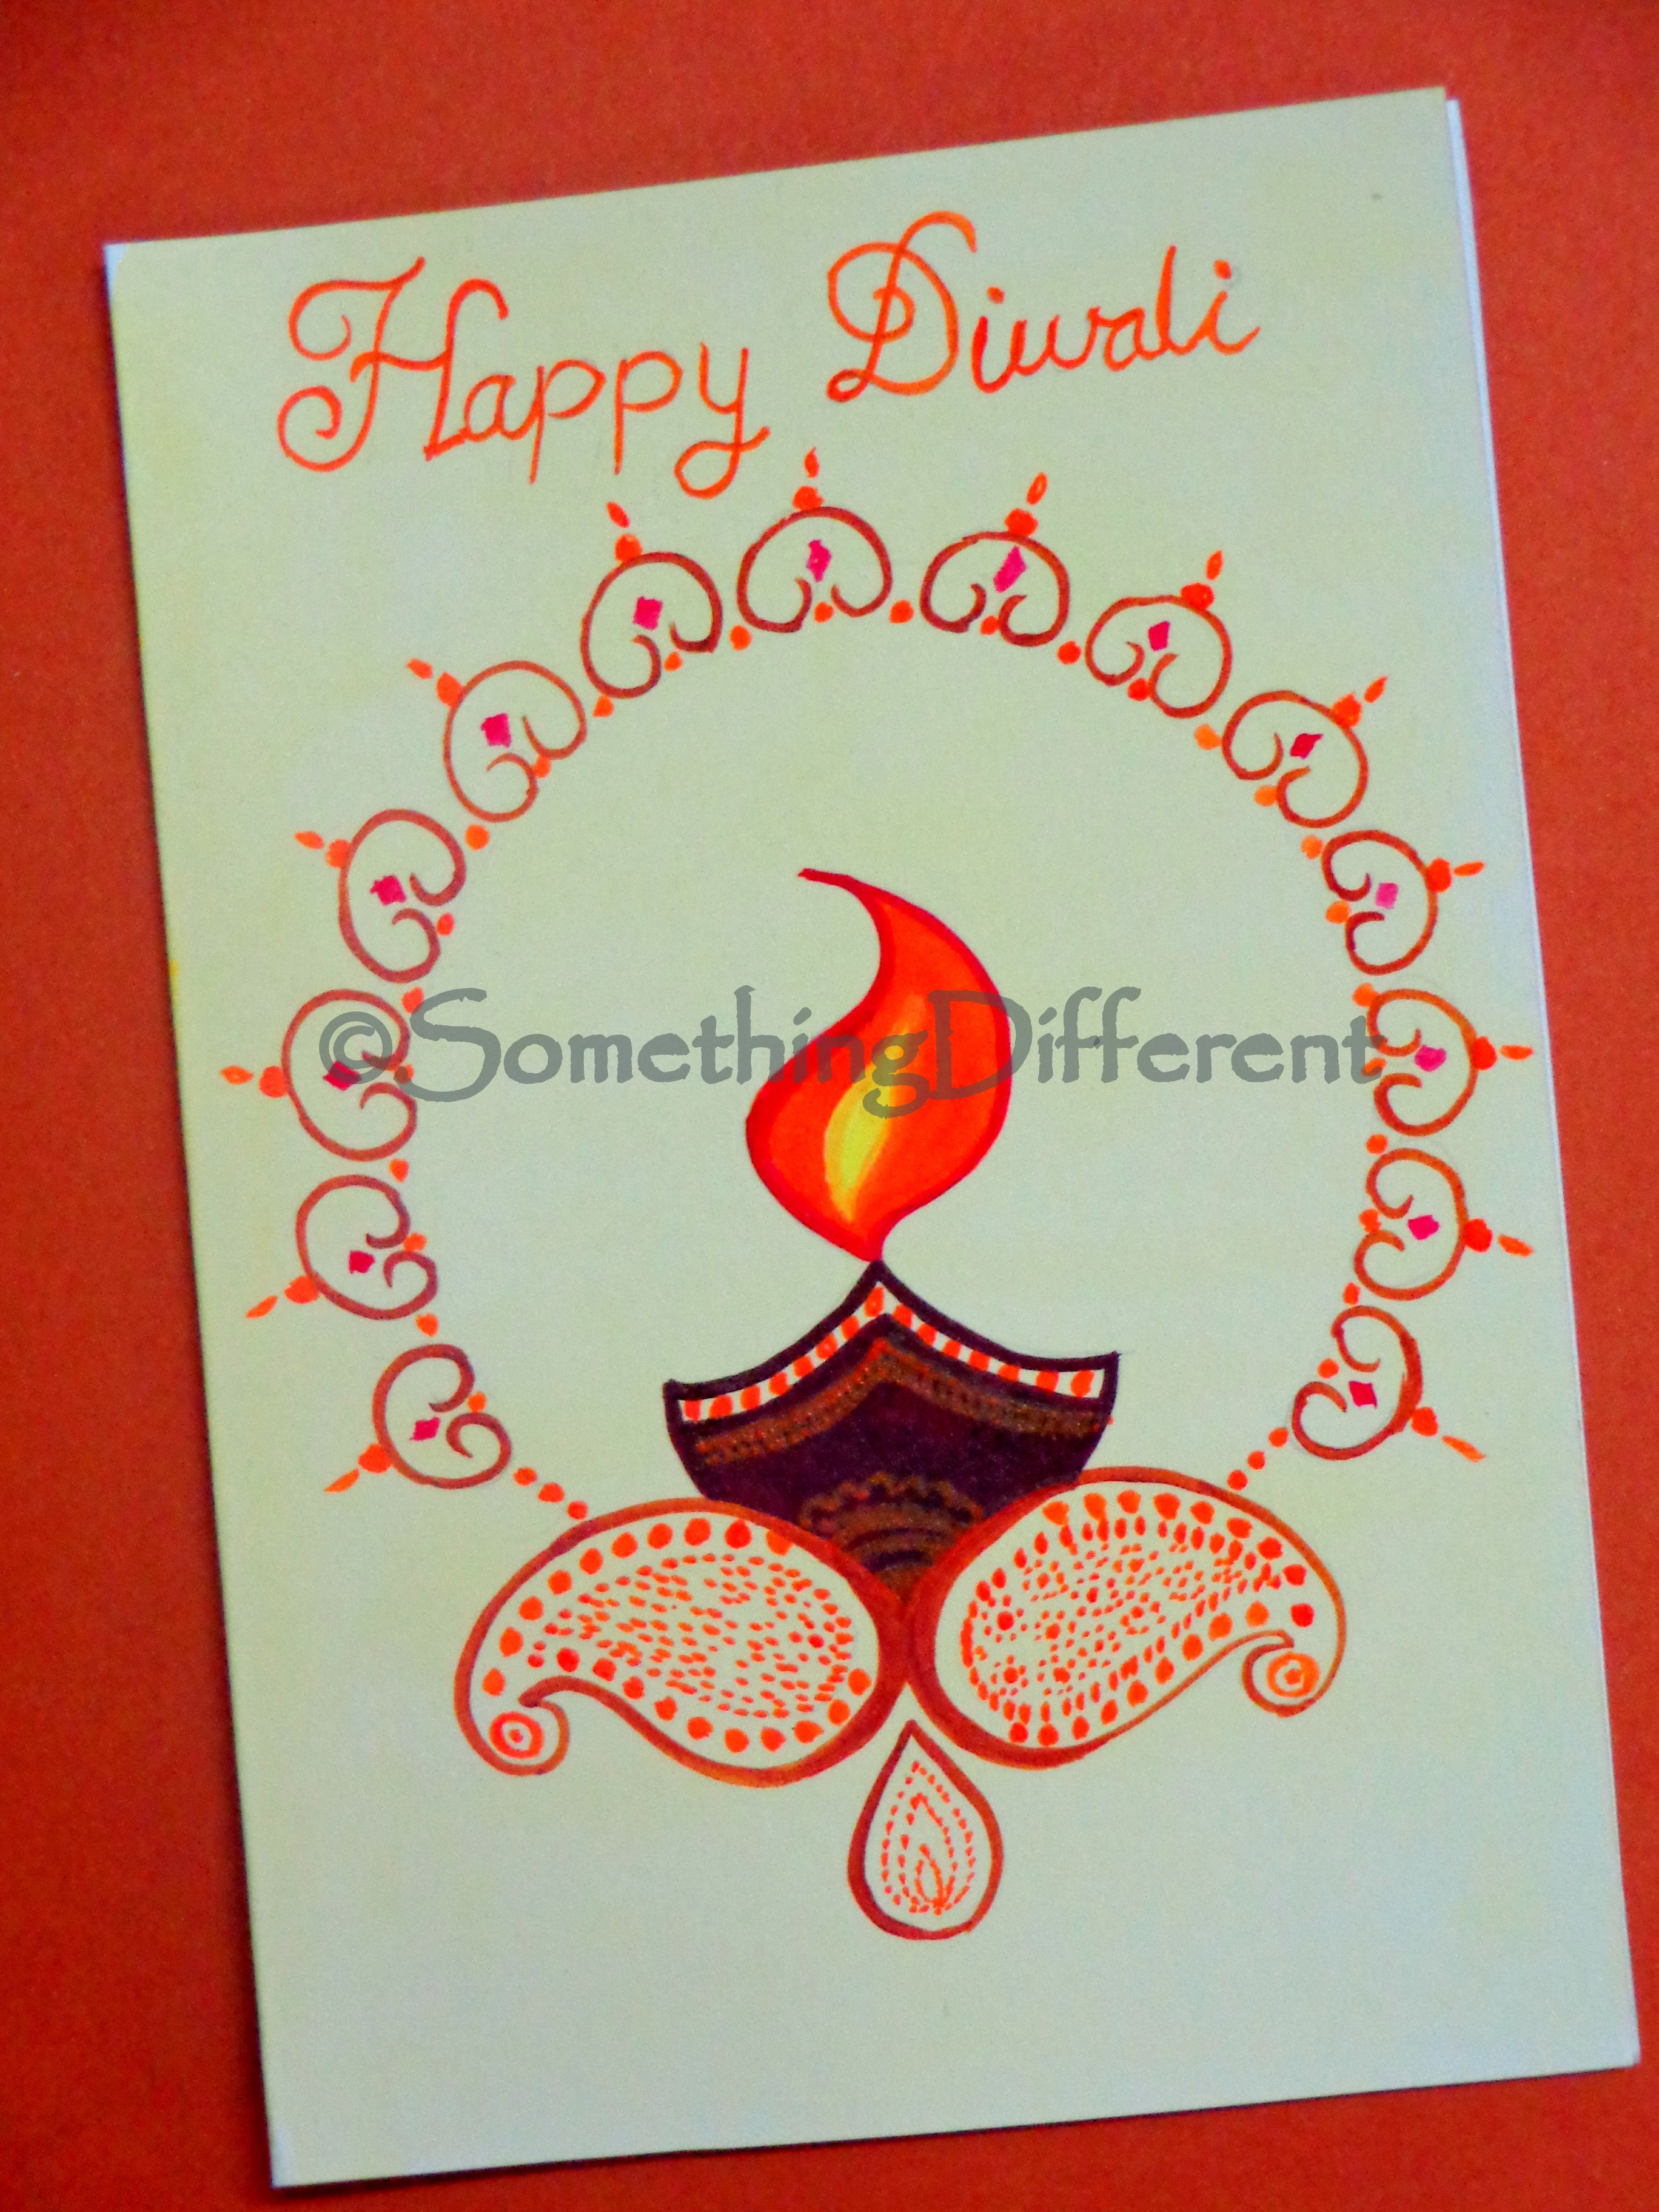 Diwali greeting card diwali greeting cards pinterest diwali diwali greeting card m4hsunfo